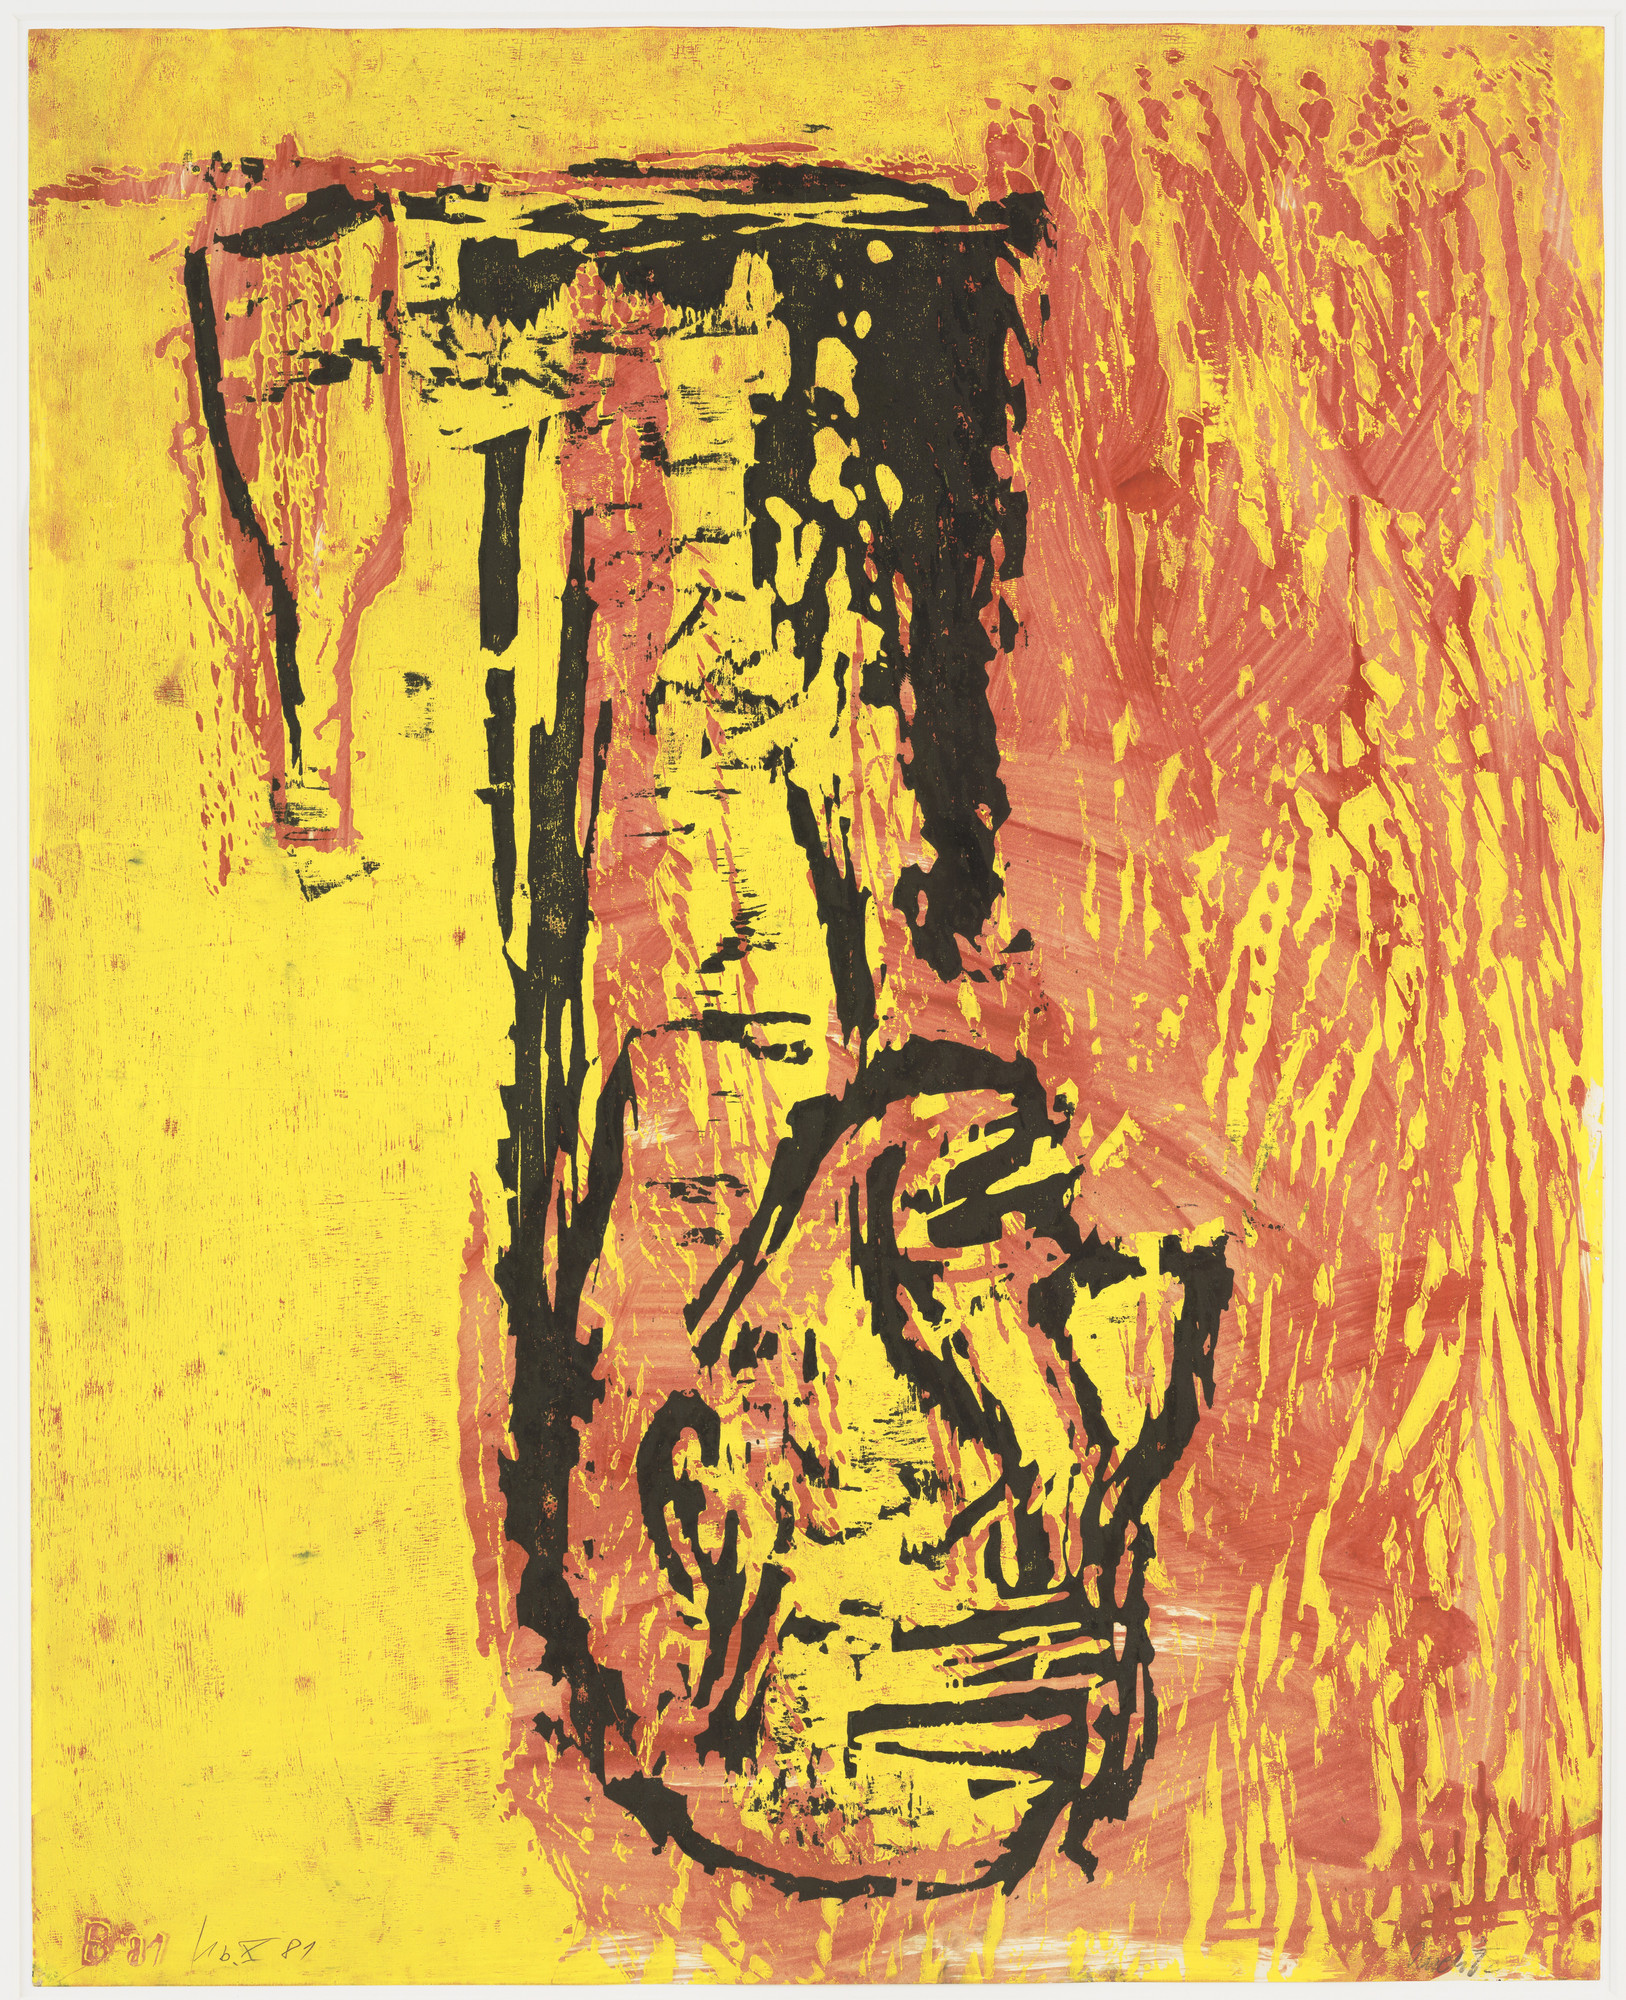 Georg Baselitz. Head and Bottle (Kopf und Flasche). (1981-82)